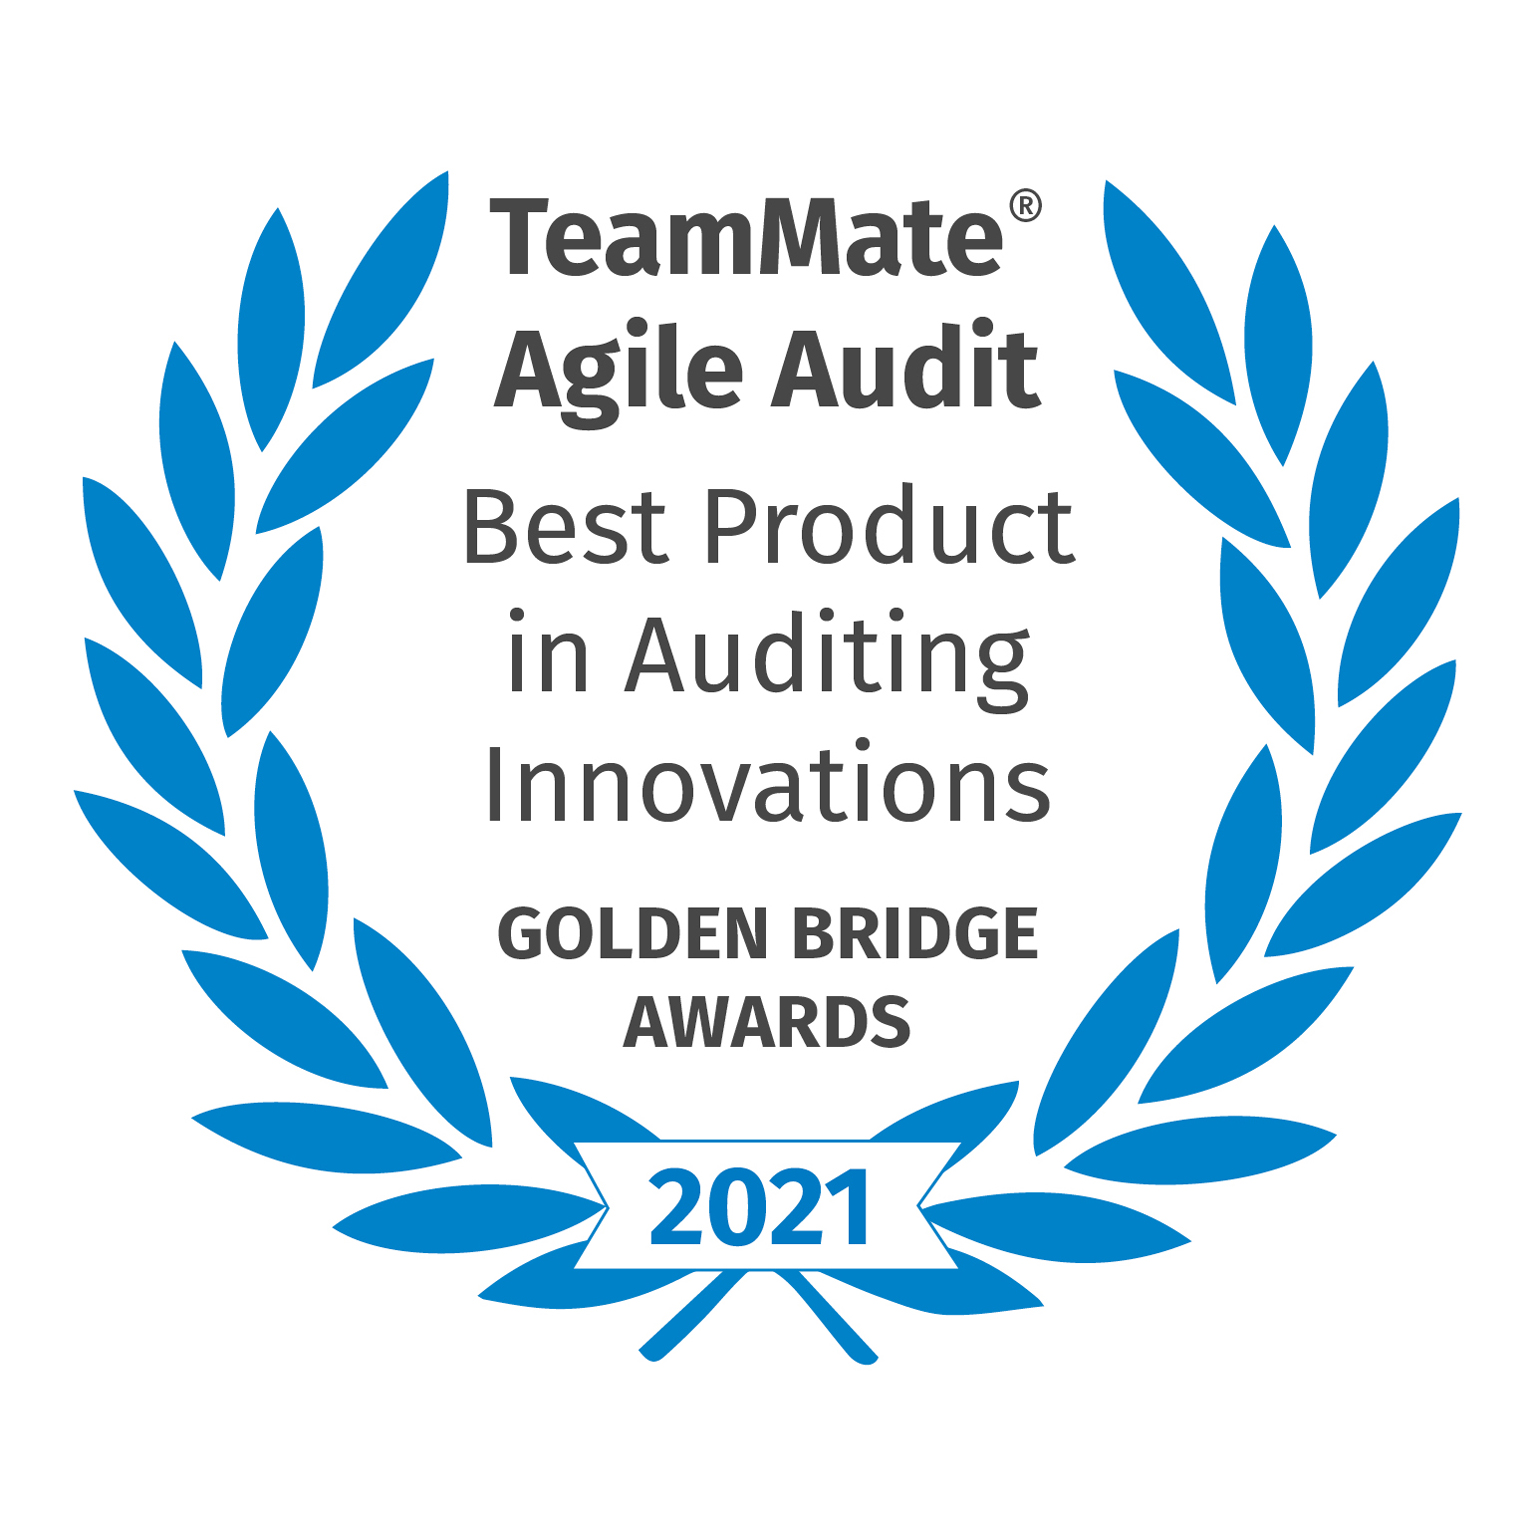 TeamMate Agile Audit - Best Product in Auditing Innovations - Golden Bridge Awards - 2021